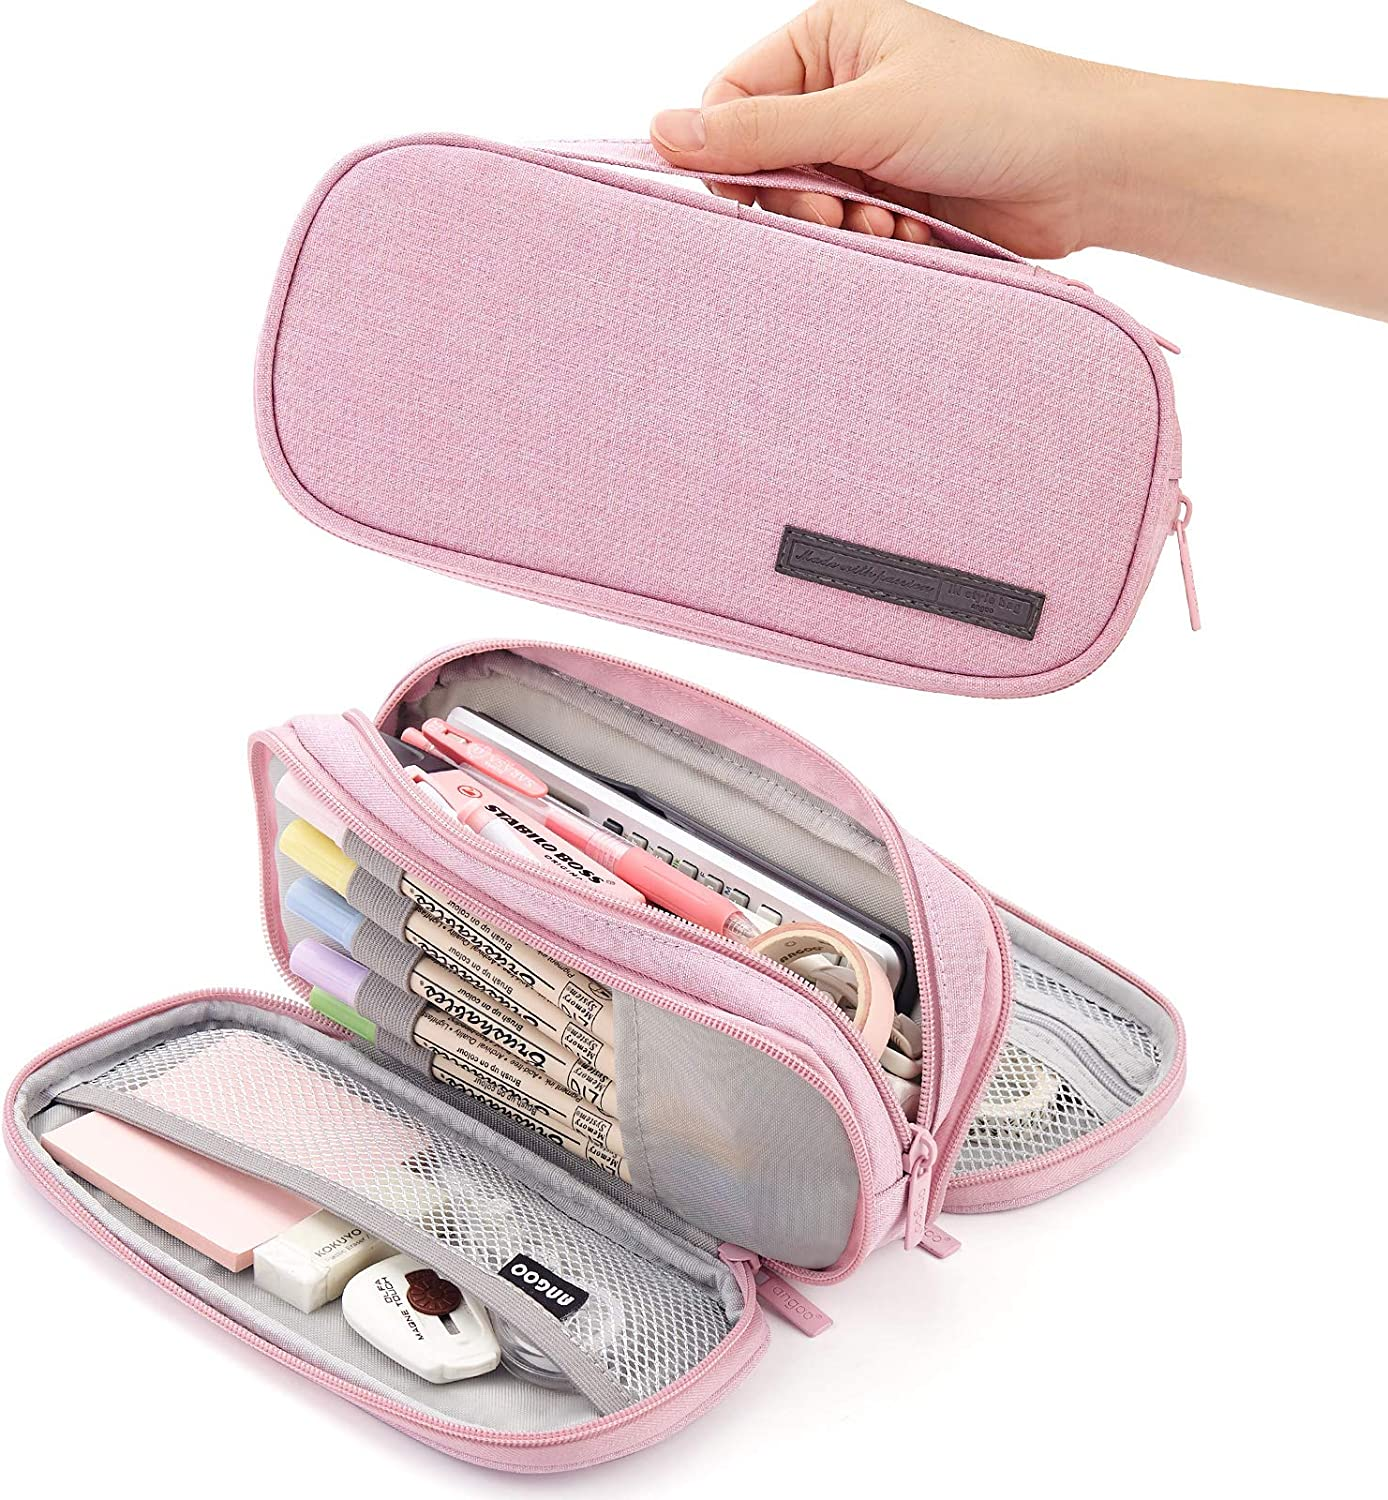 CICIMELON Pencil Case Big Capacity Handheld 3 Compartments Pencil Pouch Portable Large Storage Canvas Pencil Bag for Boys Girls Adults Students Business Office(Pink)